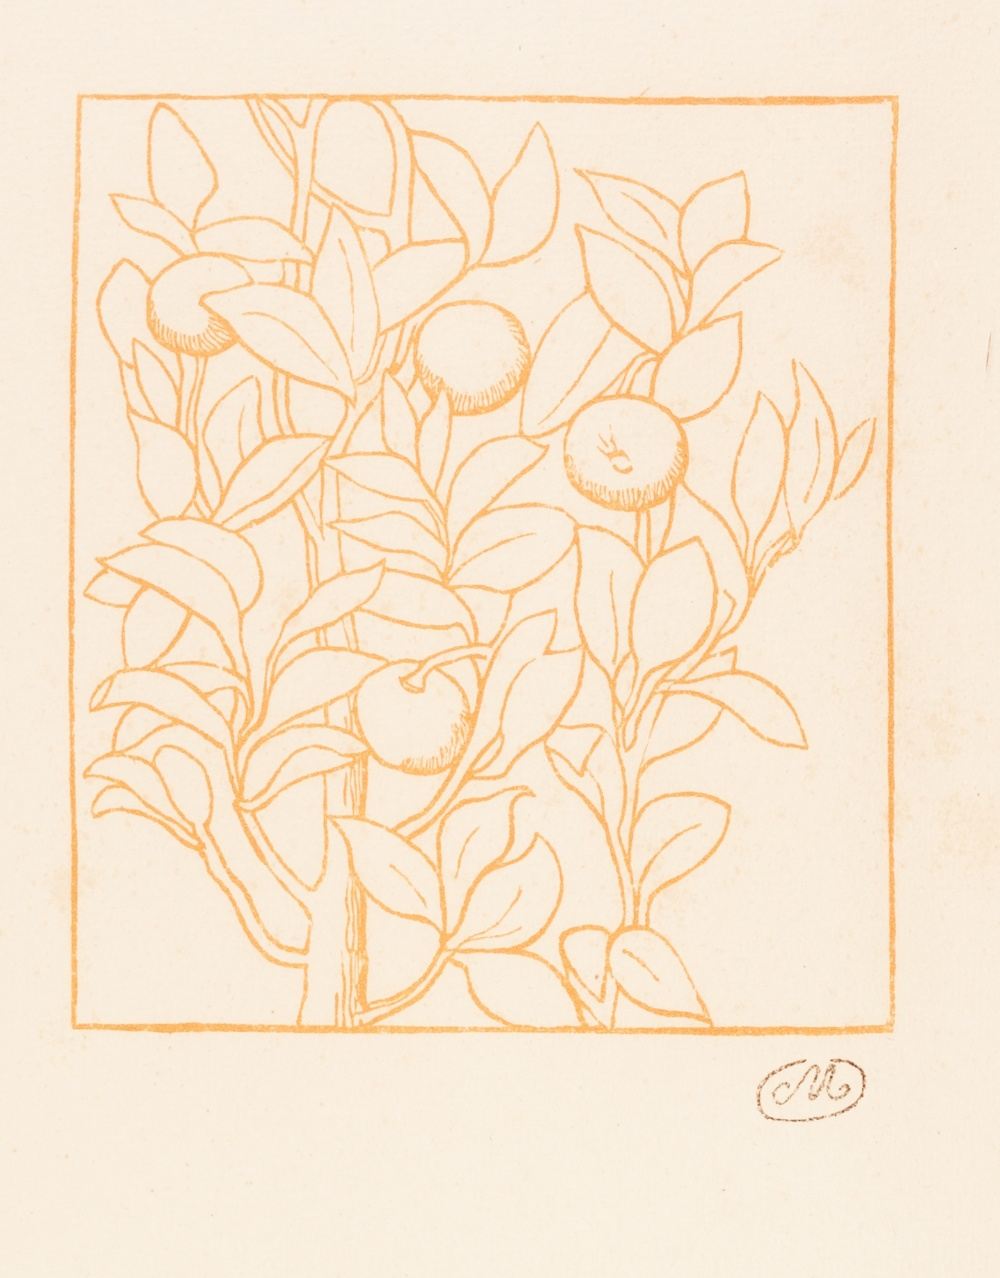 Lot 177 - ARISTIDE MAILLOL (French 1861 - 1944) WOODCUT PRINTED IN BRICK RED 'Georgiques' Signed with